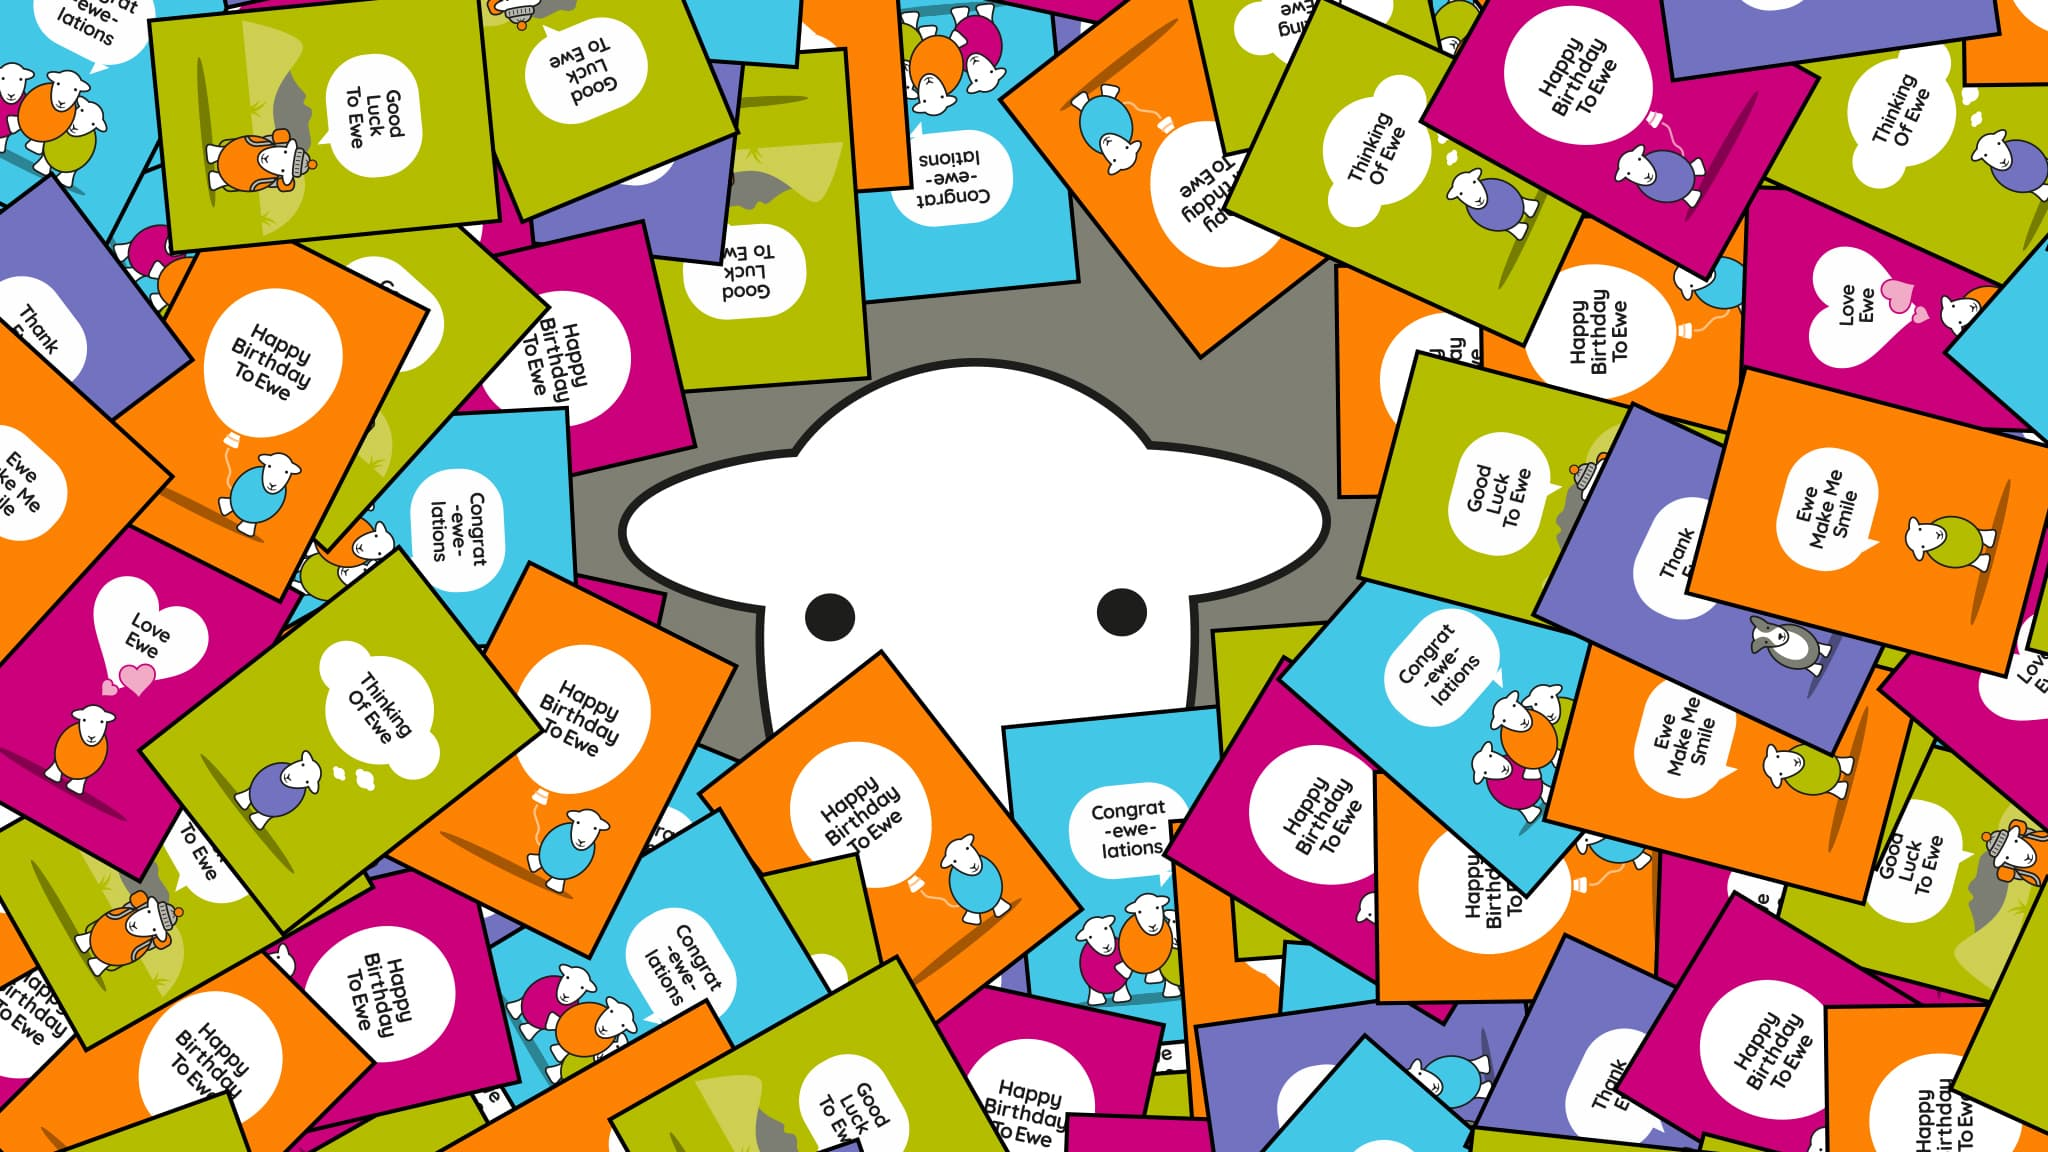 Herdy getting buried with cards